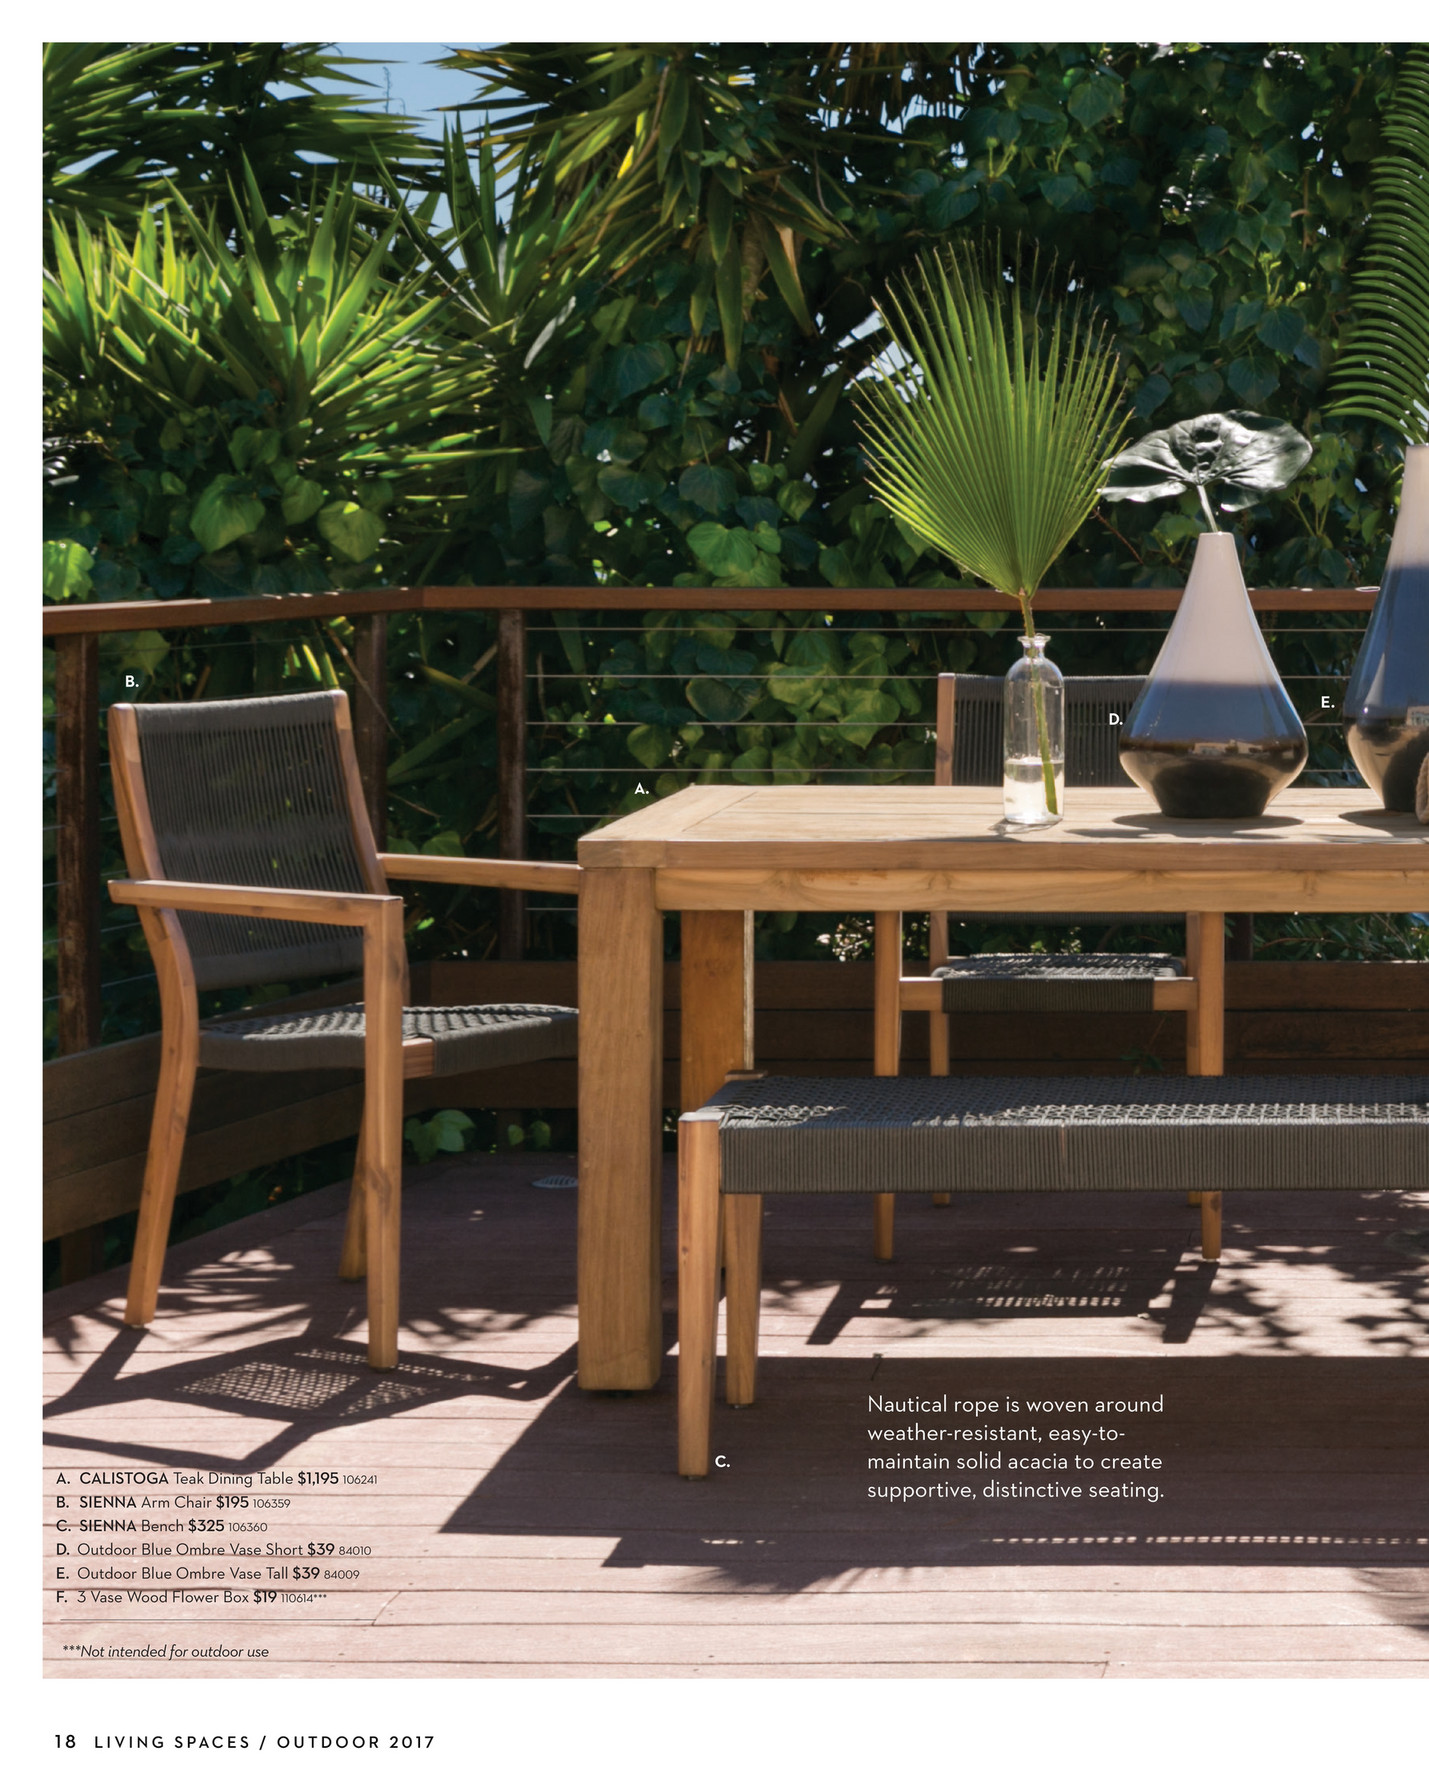 Our Calistoga Dining Table Will Endure Alfresco For Years, And We Have  Recycled Teak To Thank. Regarded As The Gold Standard For Outdoor Furniture,  ...